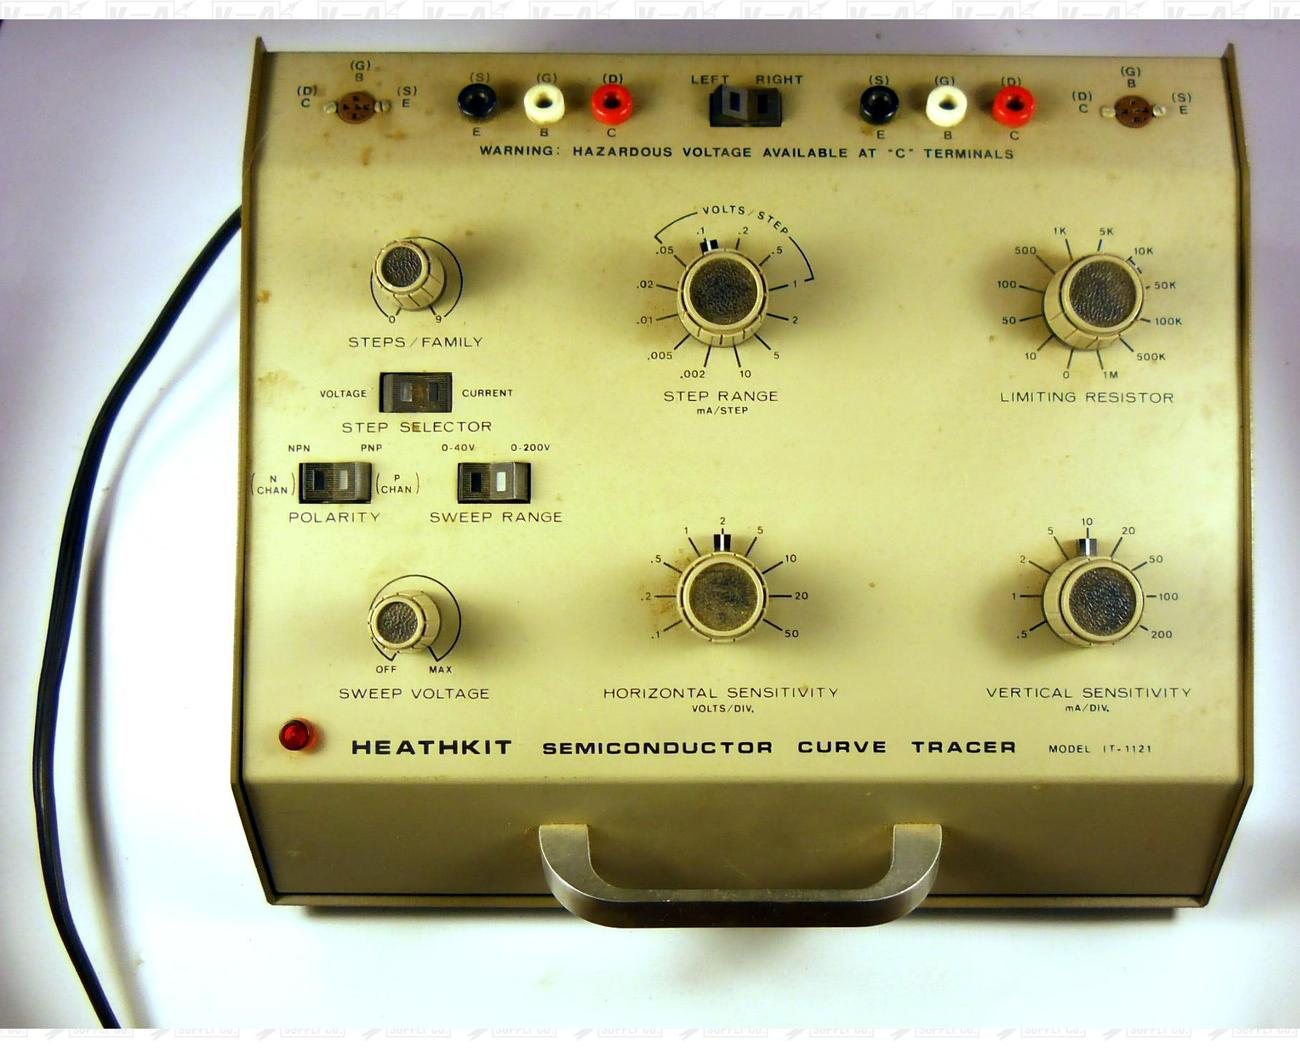 Heathkit Semiconductor Curve Tracer Model IT-1121